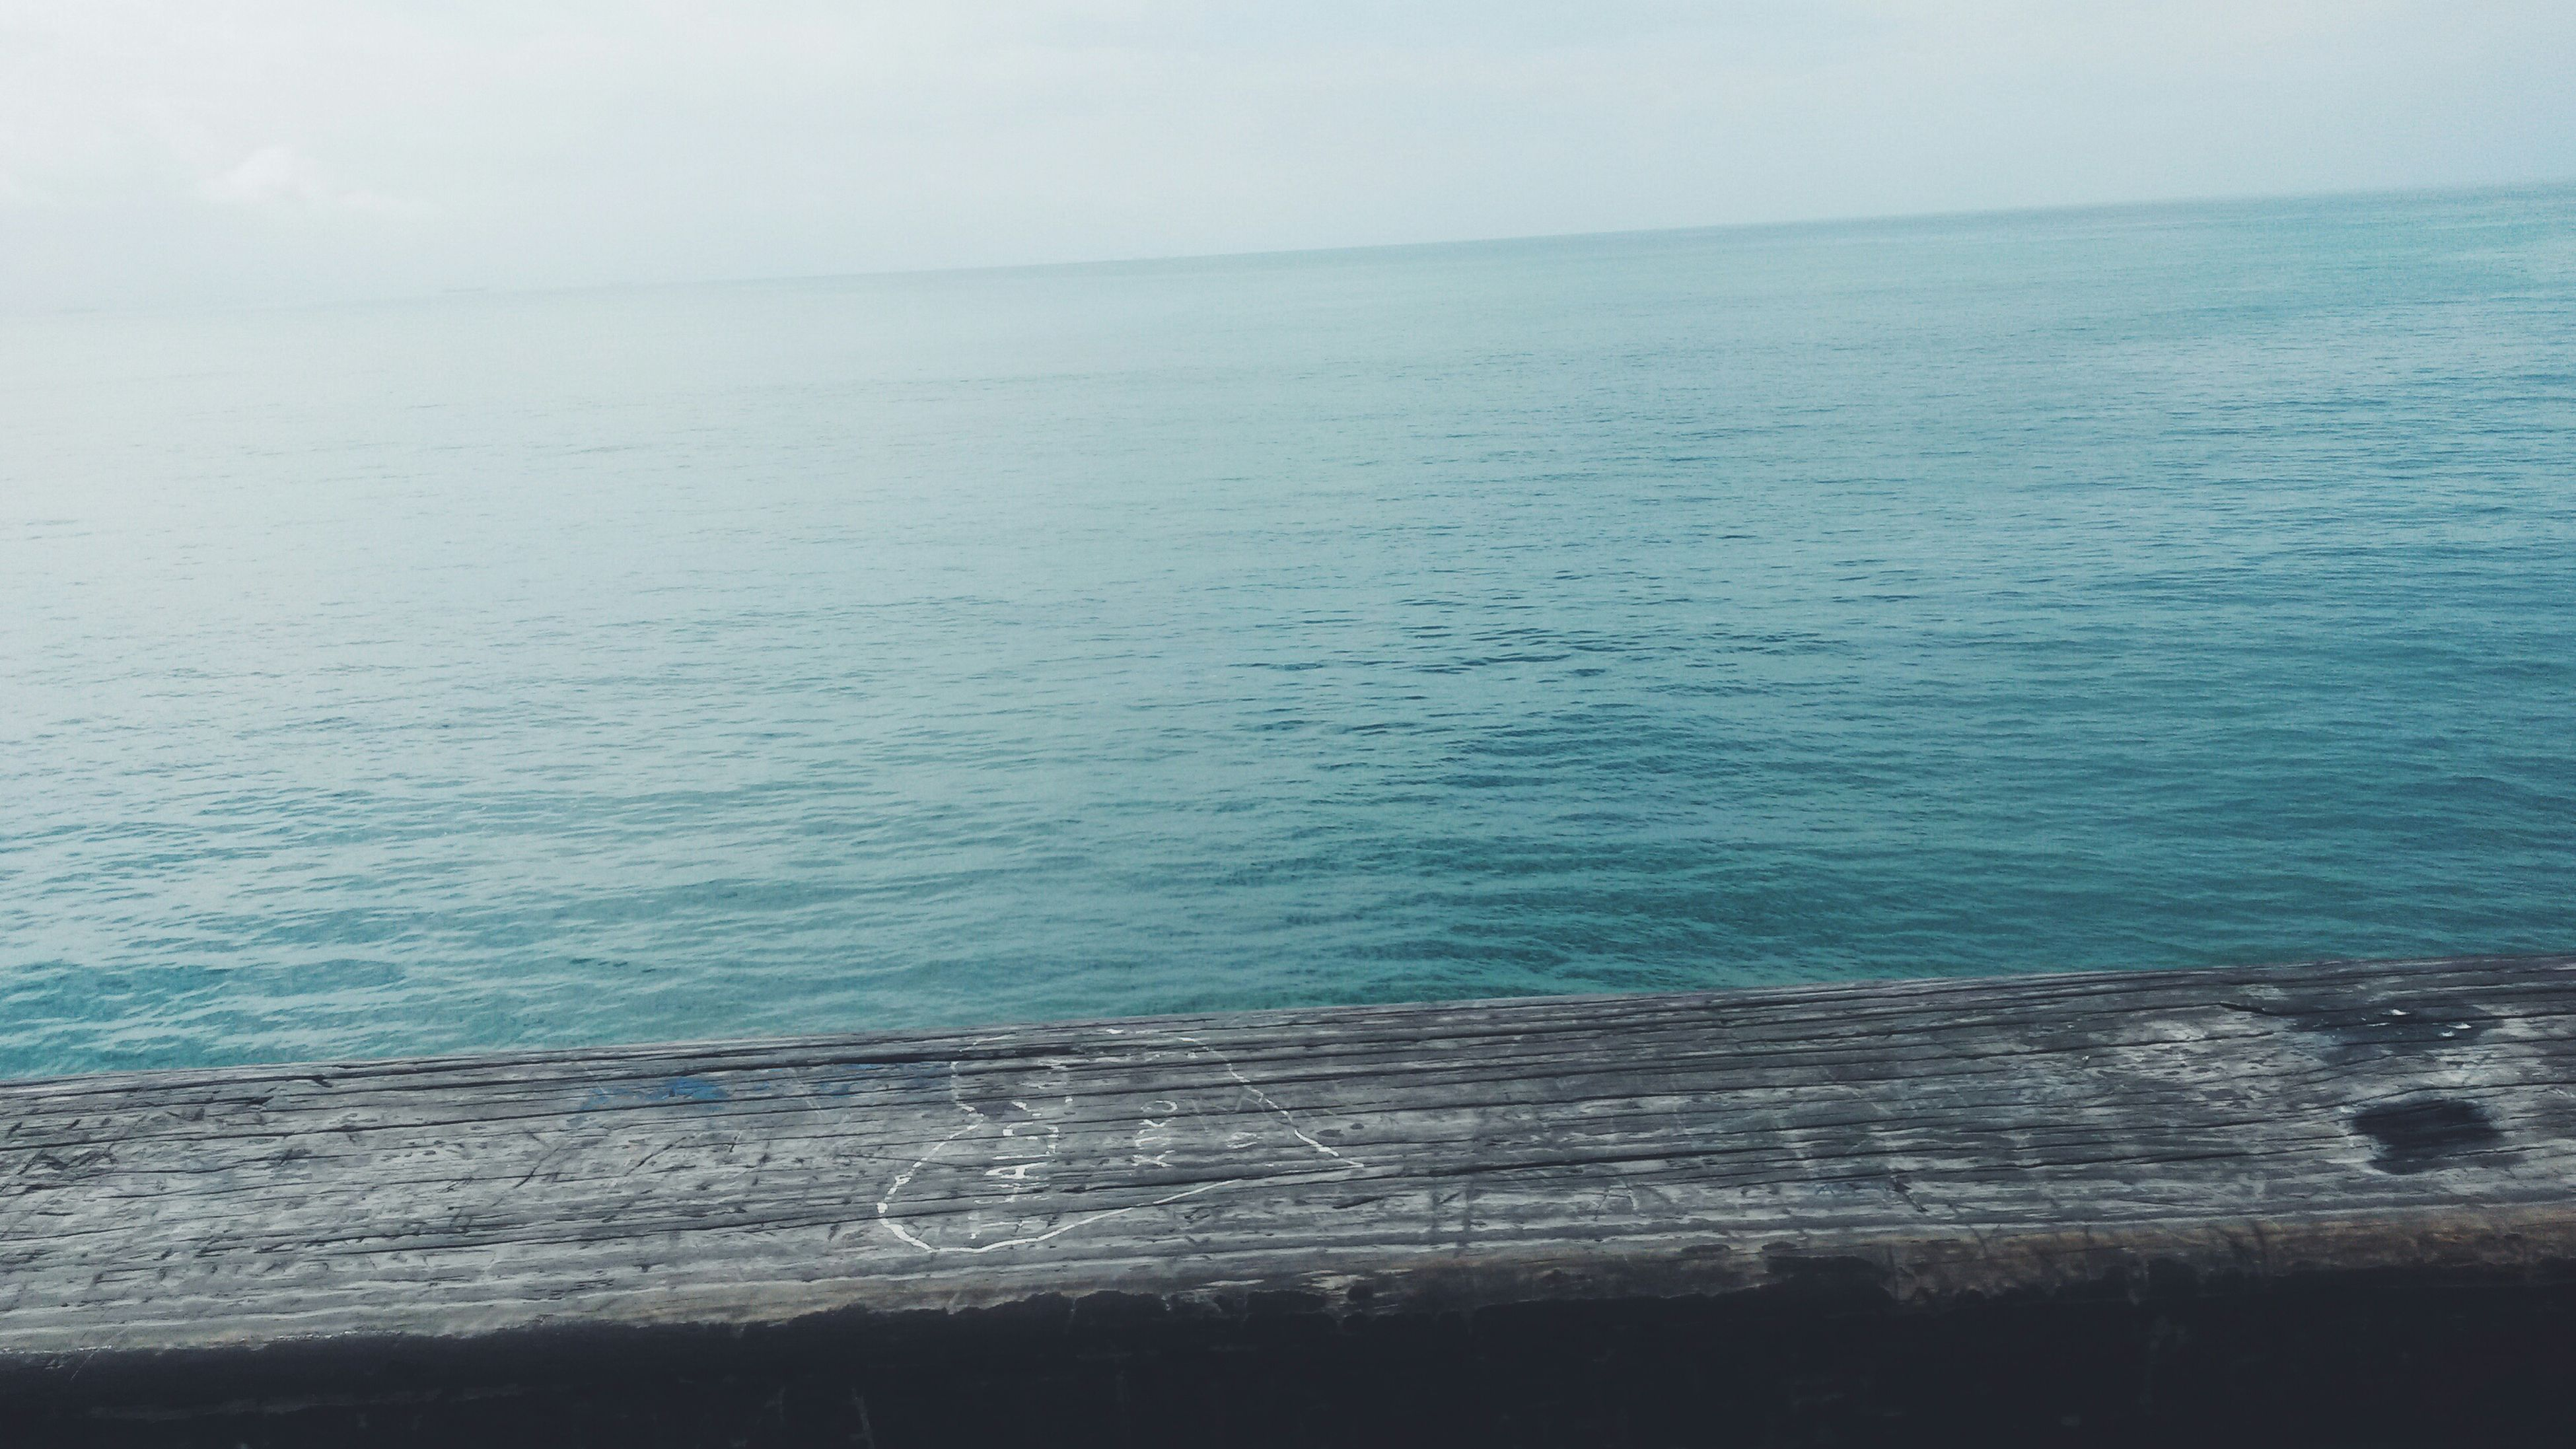 sea, water, horizon over water, tranquil scene, tranquility, scenics, beauty in nature, nature, blue, copy space, sky, seascape, idyllic, rippled, clear sky, wood - material, calm, day, pier, high angle view